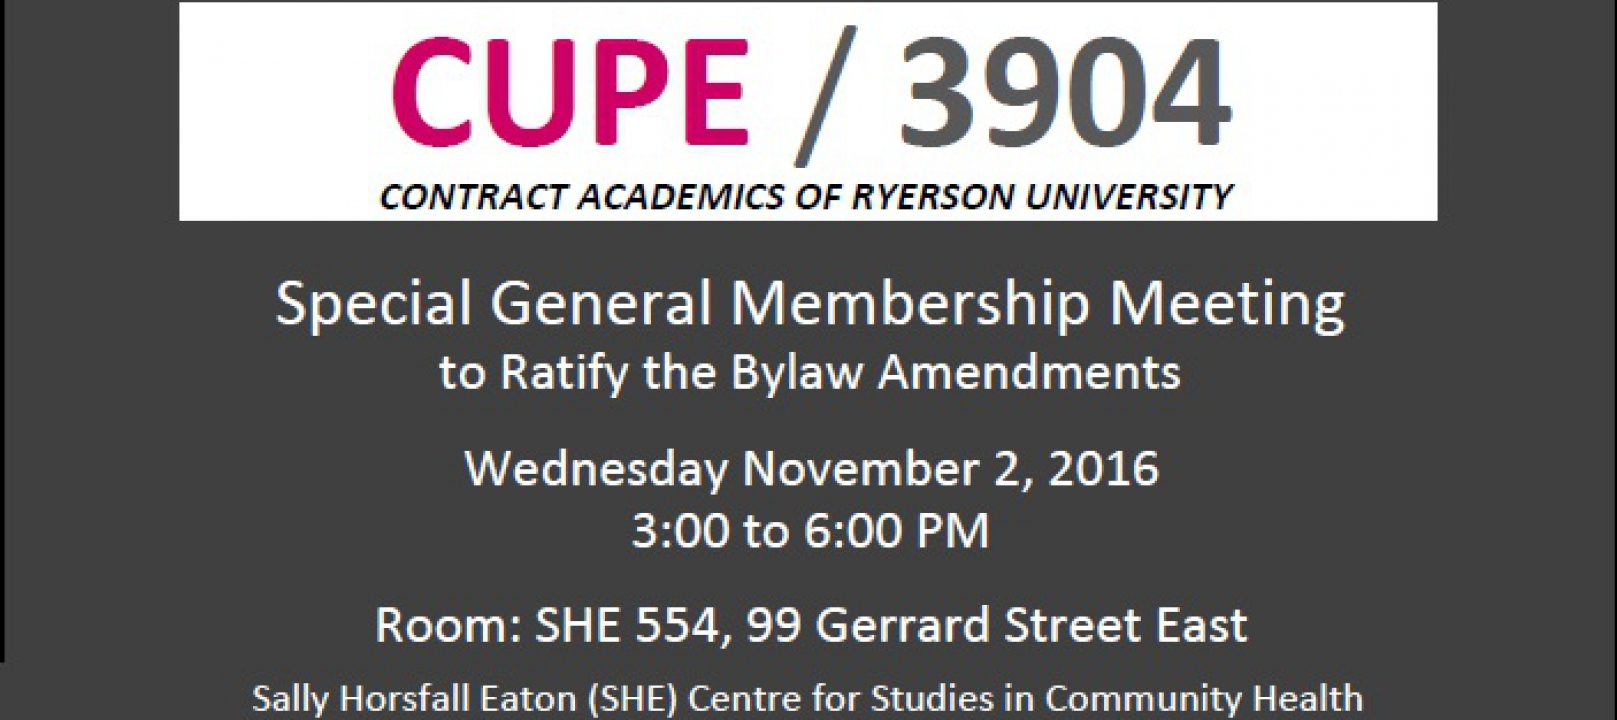 Special General Membership Meeting to Ratify the Bylaw Amendments (Wednesday November 2, 2016)